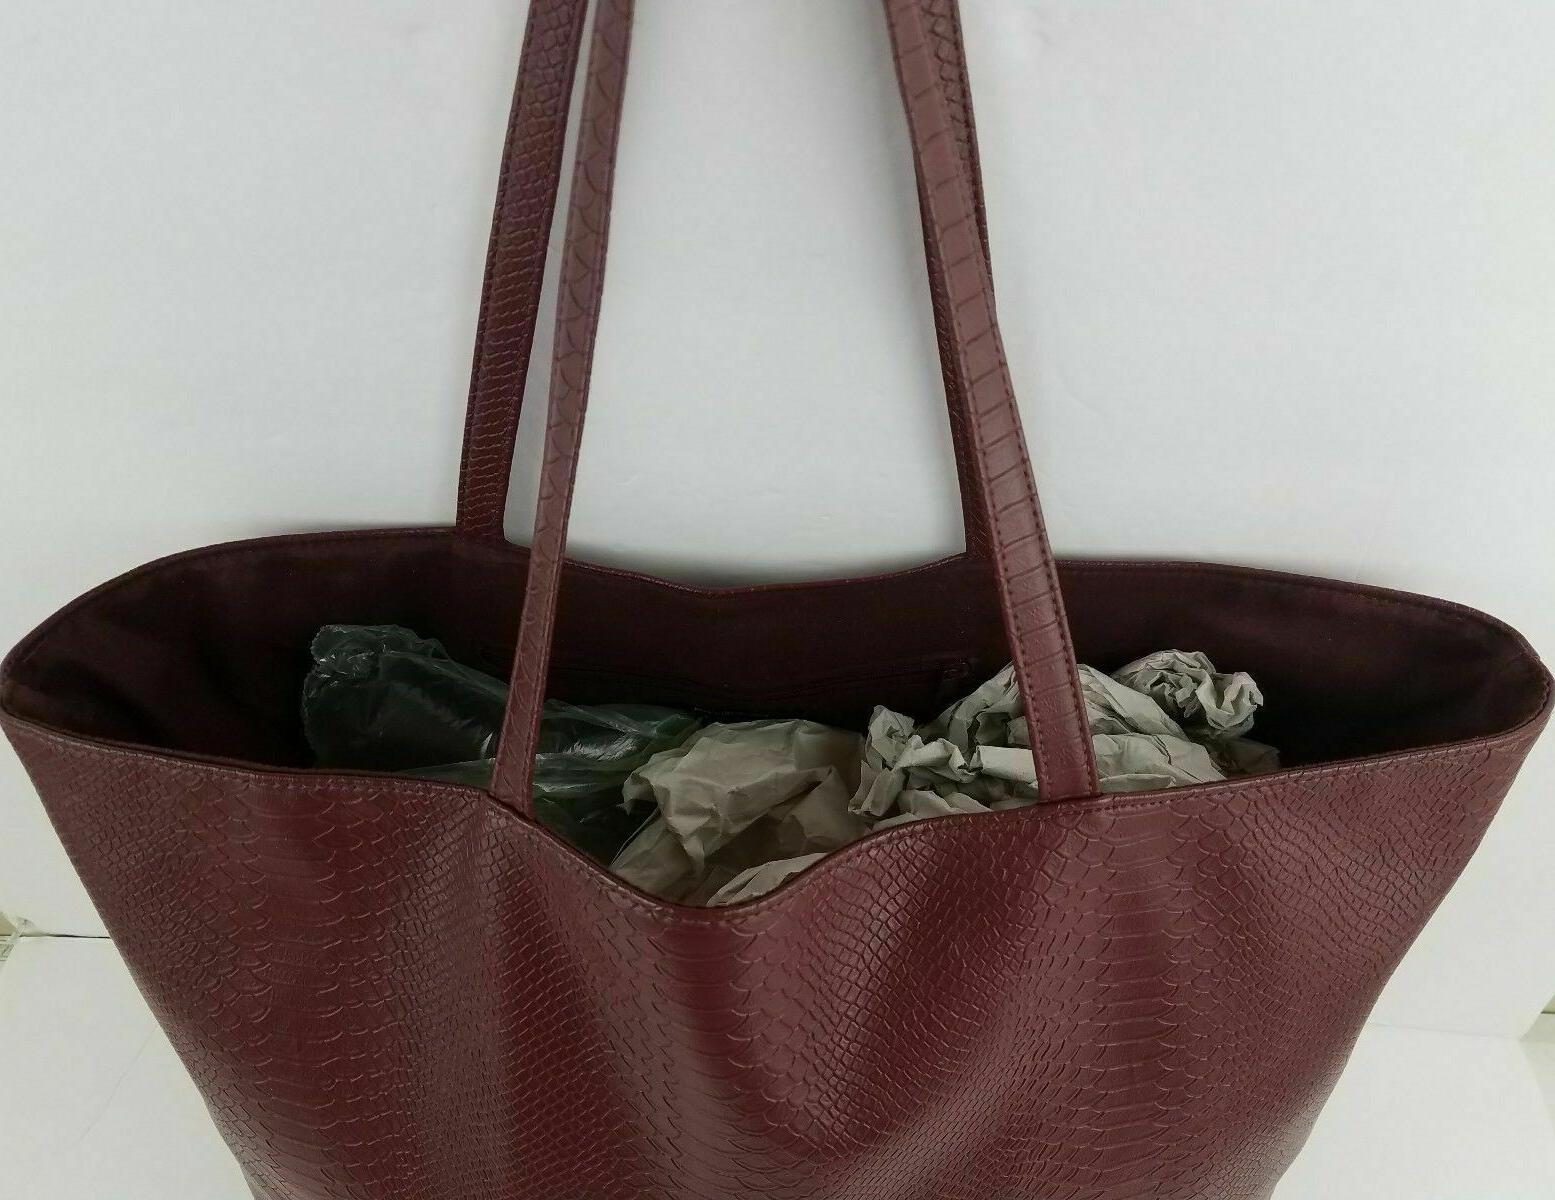 Bloomingdale's Snakeskin Leather Tote Bag Shopper Shoulder